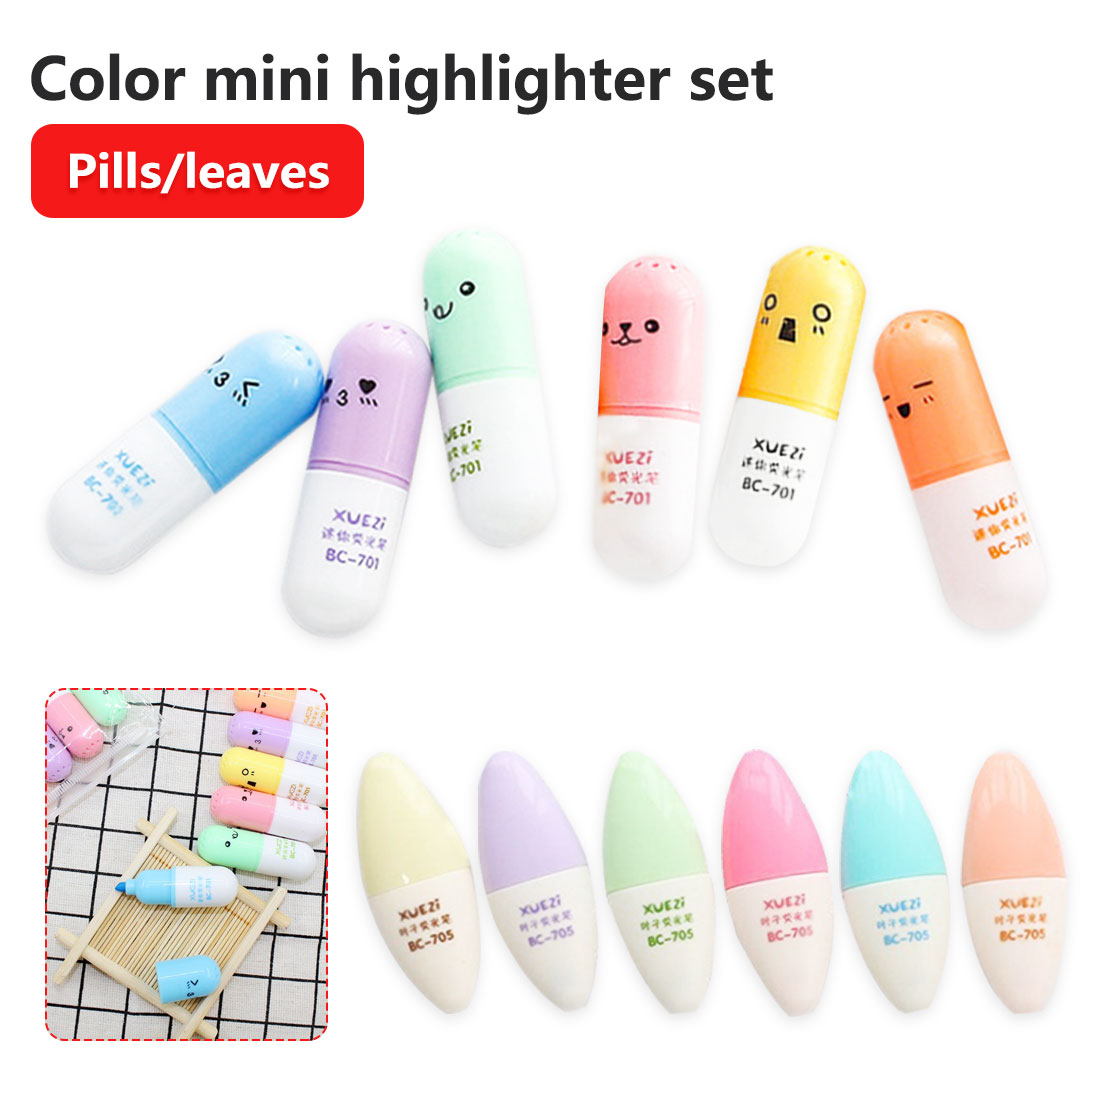 Highlighter Vitamin Pill Pens Stationery Study Novelty School Gift Kawaii Japan